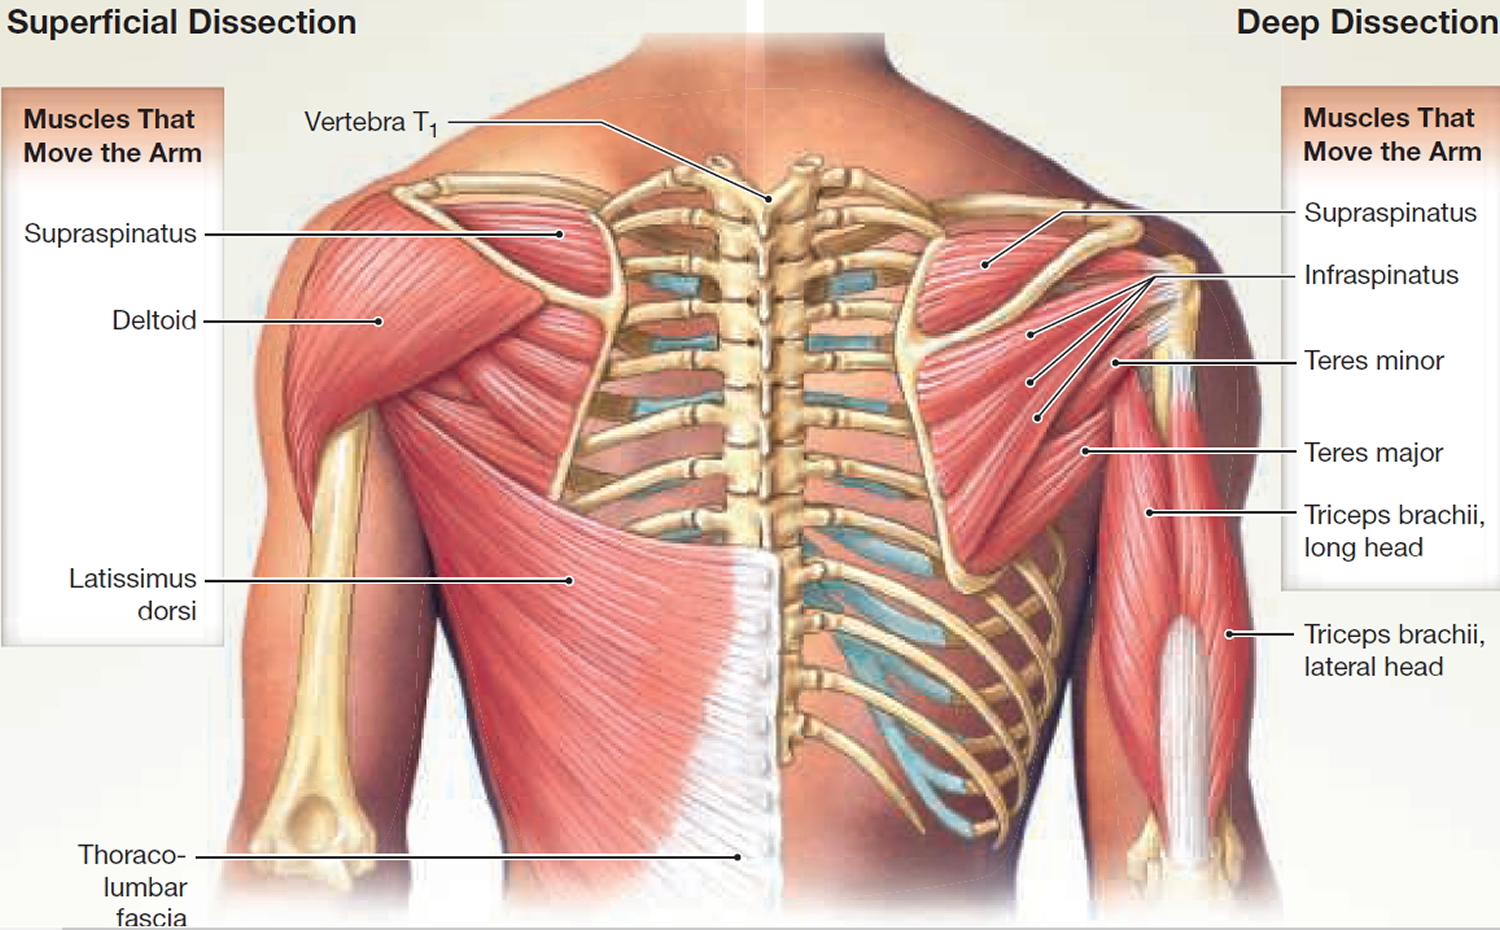 muscles that move the arm - back view